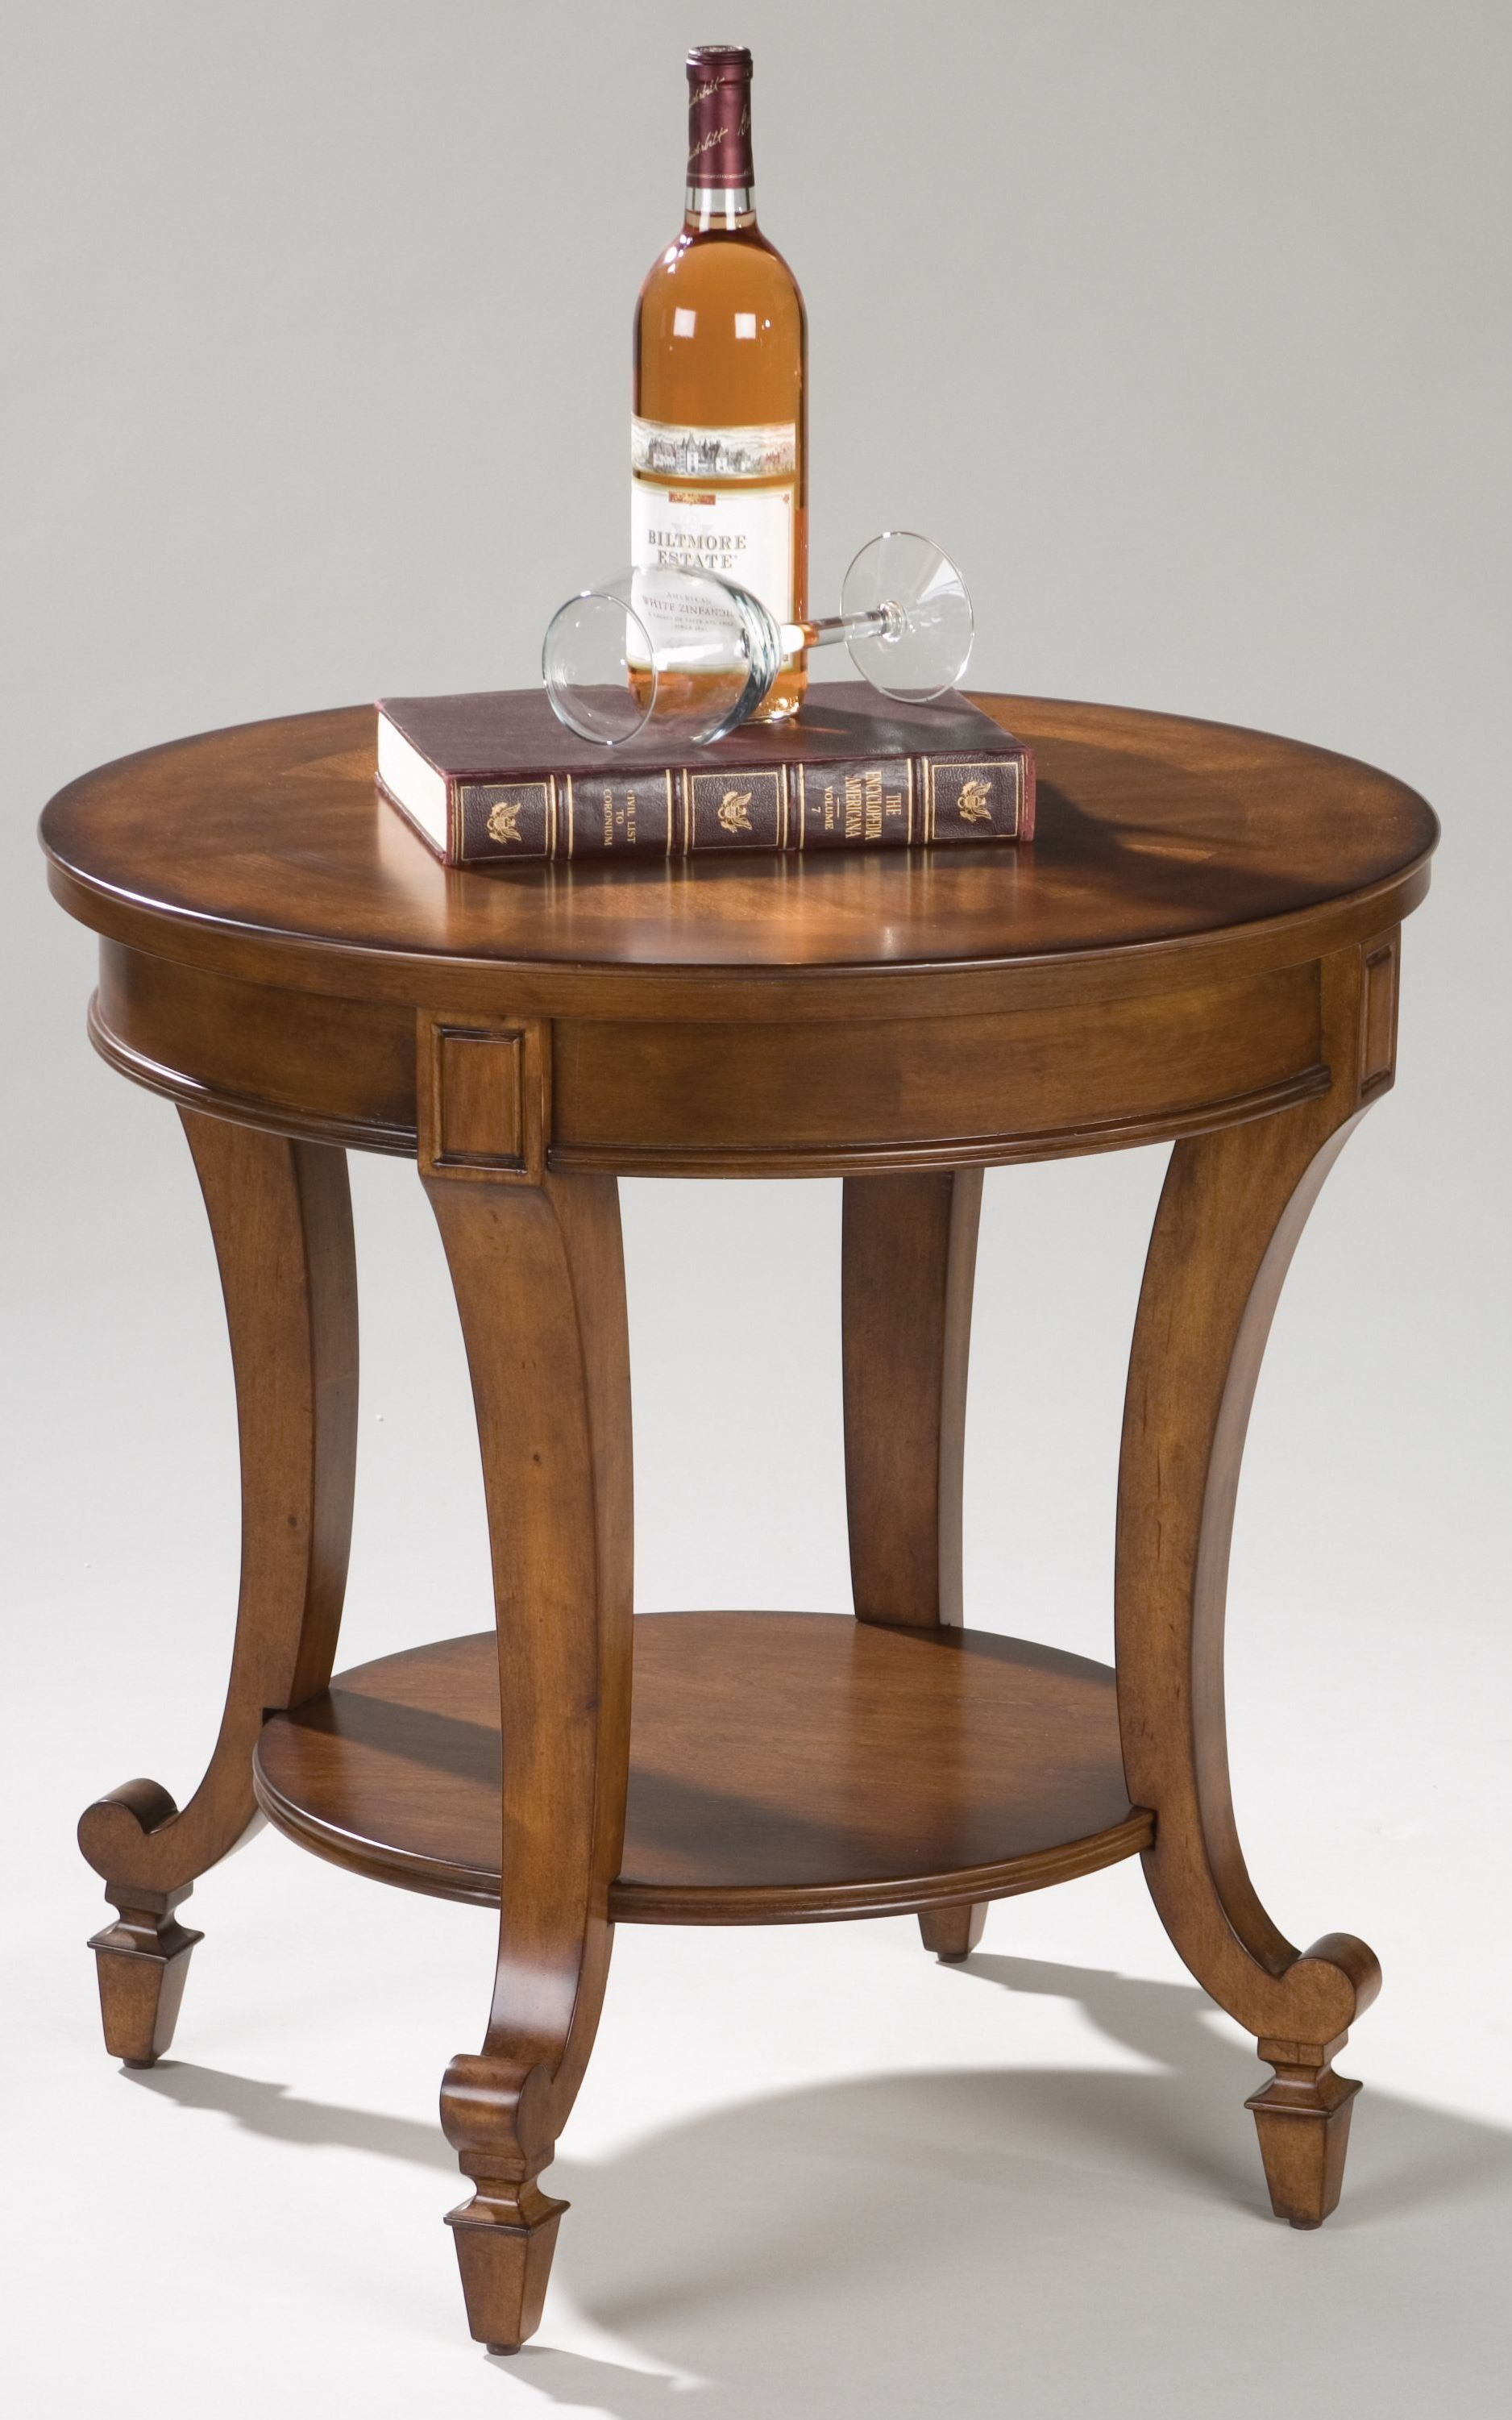 Aidan Round End Table From Magnussen Home (T1052-05